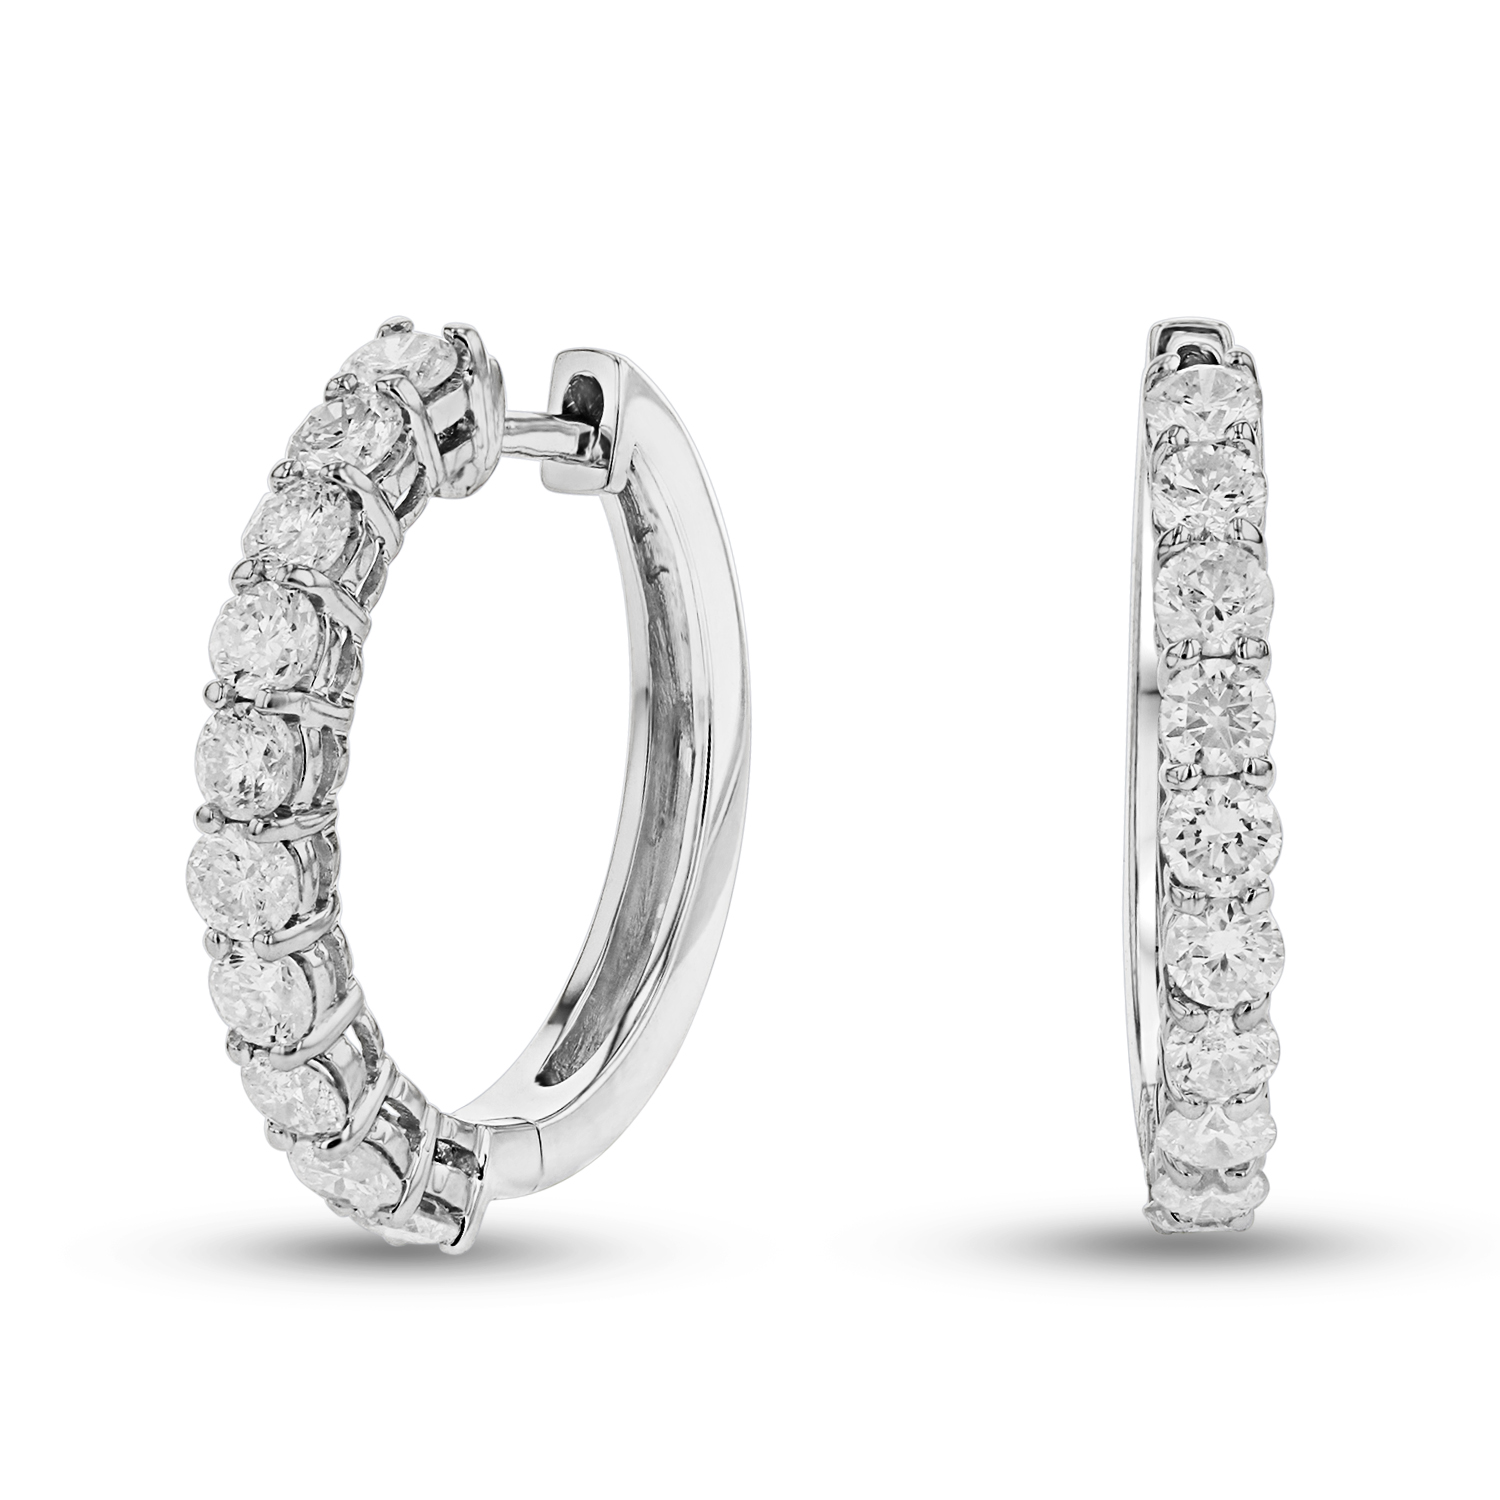 View 1 1/4ctw Diamond Hoop Earrings in 14k Gold